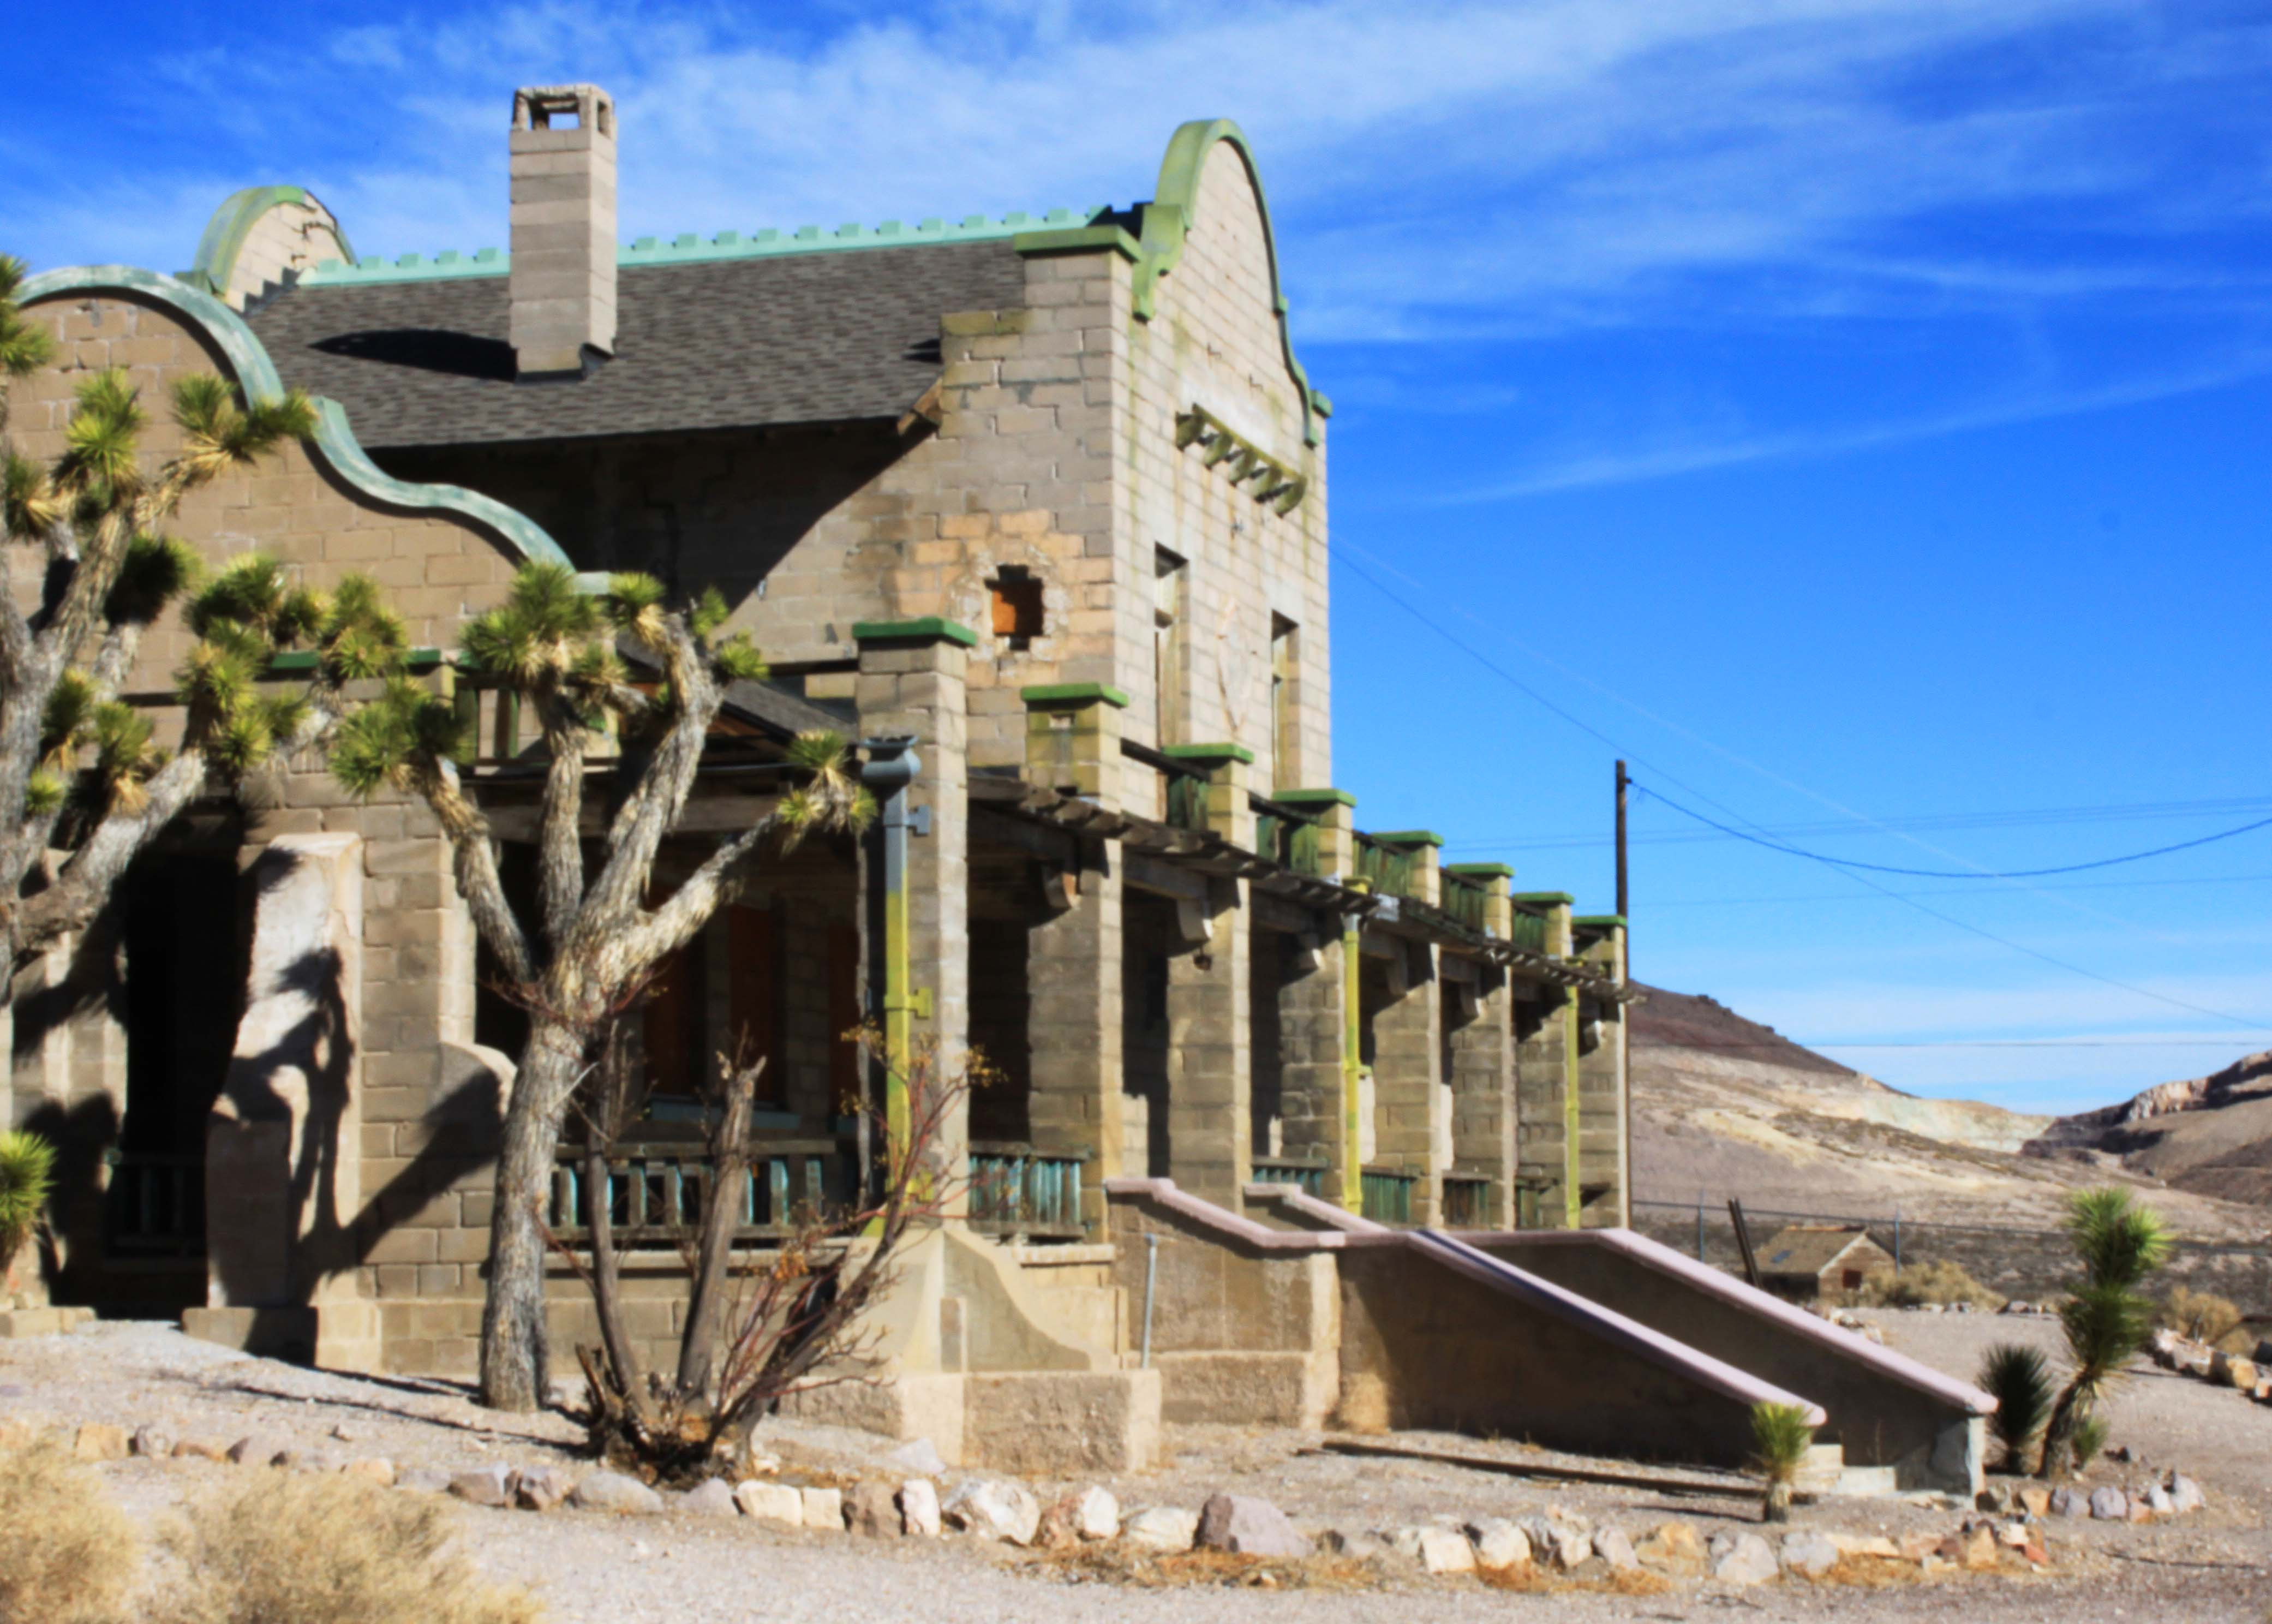 Rhyolite Ghost Town & the Oddity Next To It - American ... |Rhyolite Ghost Town